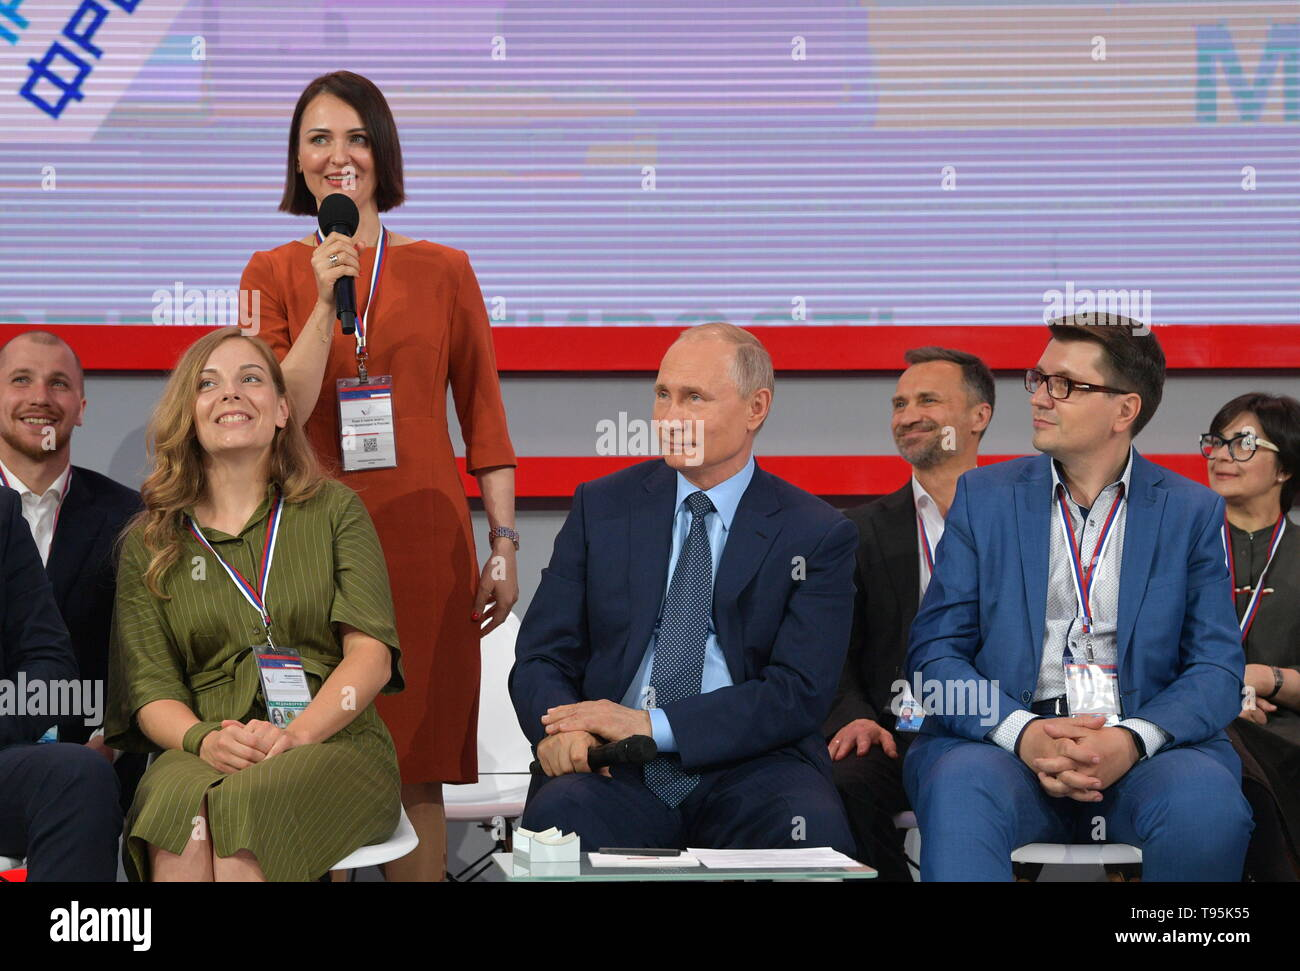 Sochi, Russia. 16th May, 2019. SOCHI, RUSSIA - MAY 16, 2019: Russia's President Vladimir Putin (C) attends the plenary meeting at the 6th Independent Local and Regional Media Forum held by the All-Russian People's Front. Alexei Druzhinin/Russian Presidential Press and Information Office/TASS Credit: ITAR-TASS News Agency/Alamy Live News - Stock Image